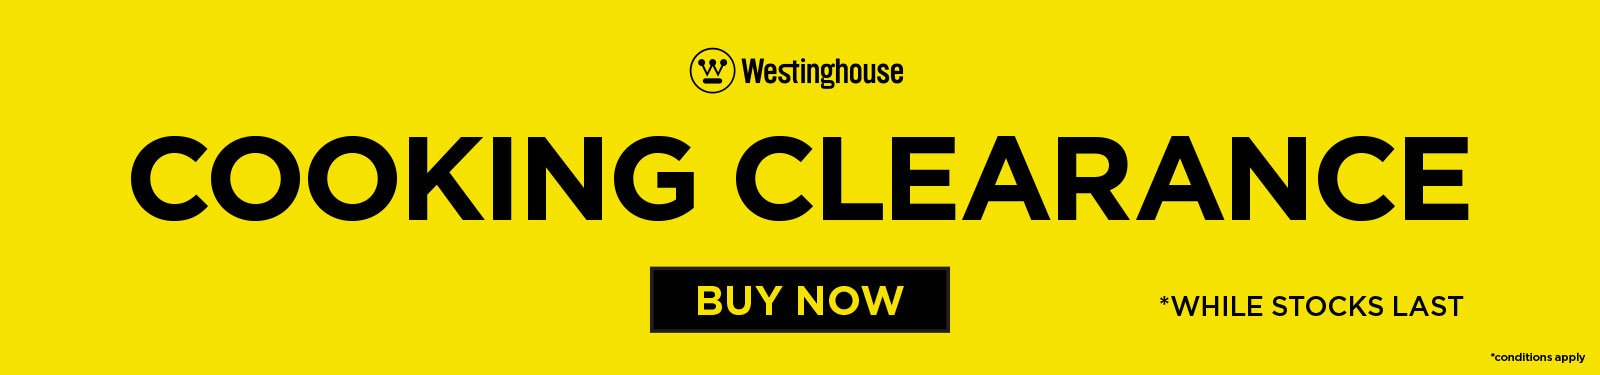 Westinghouse Cooking Clearance